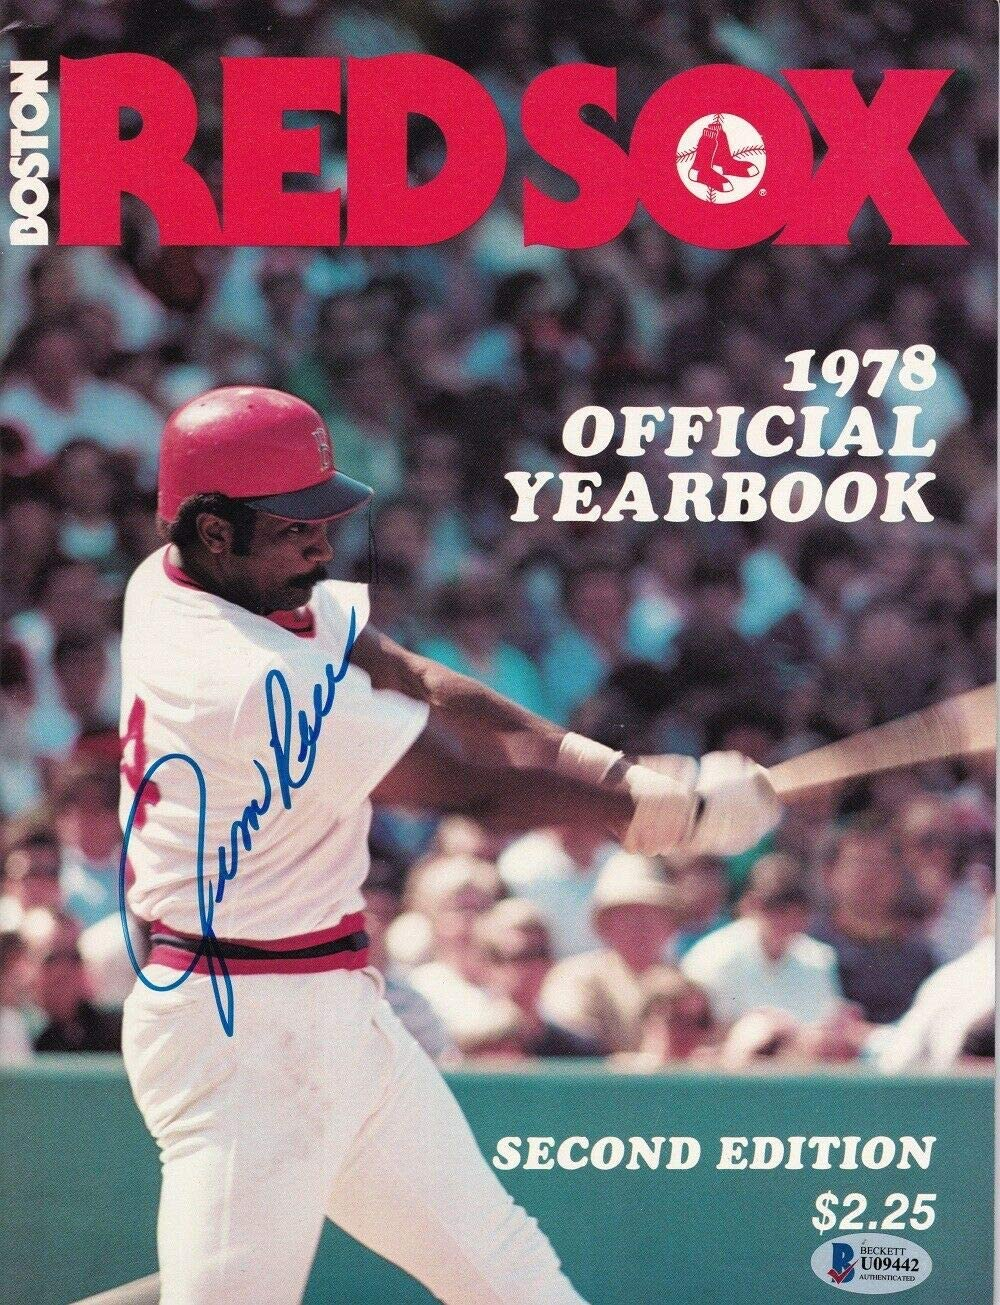 Jim Rice Autographed Signed Boston Magazi Yearbook 25% OFF 1978 Official Baltimore Mall